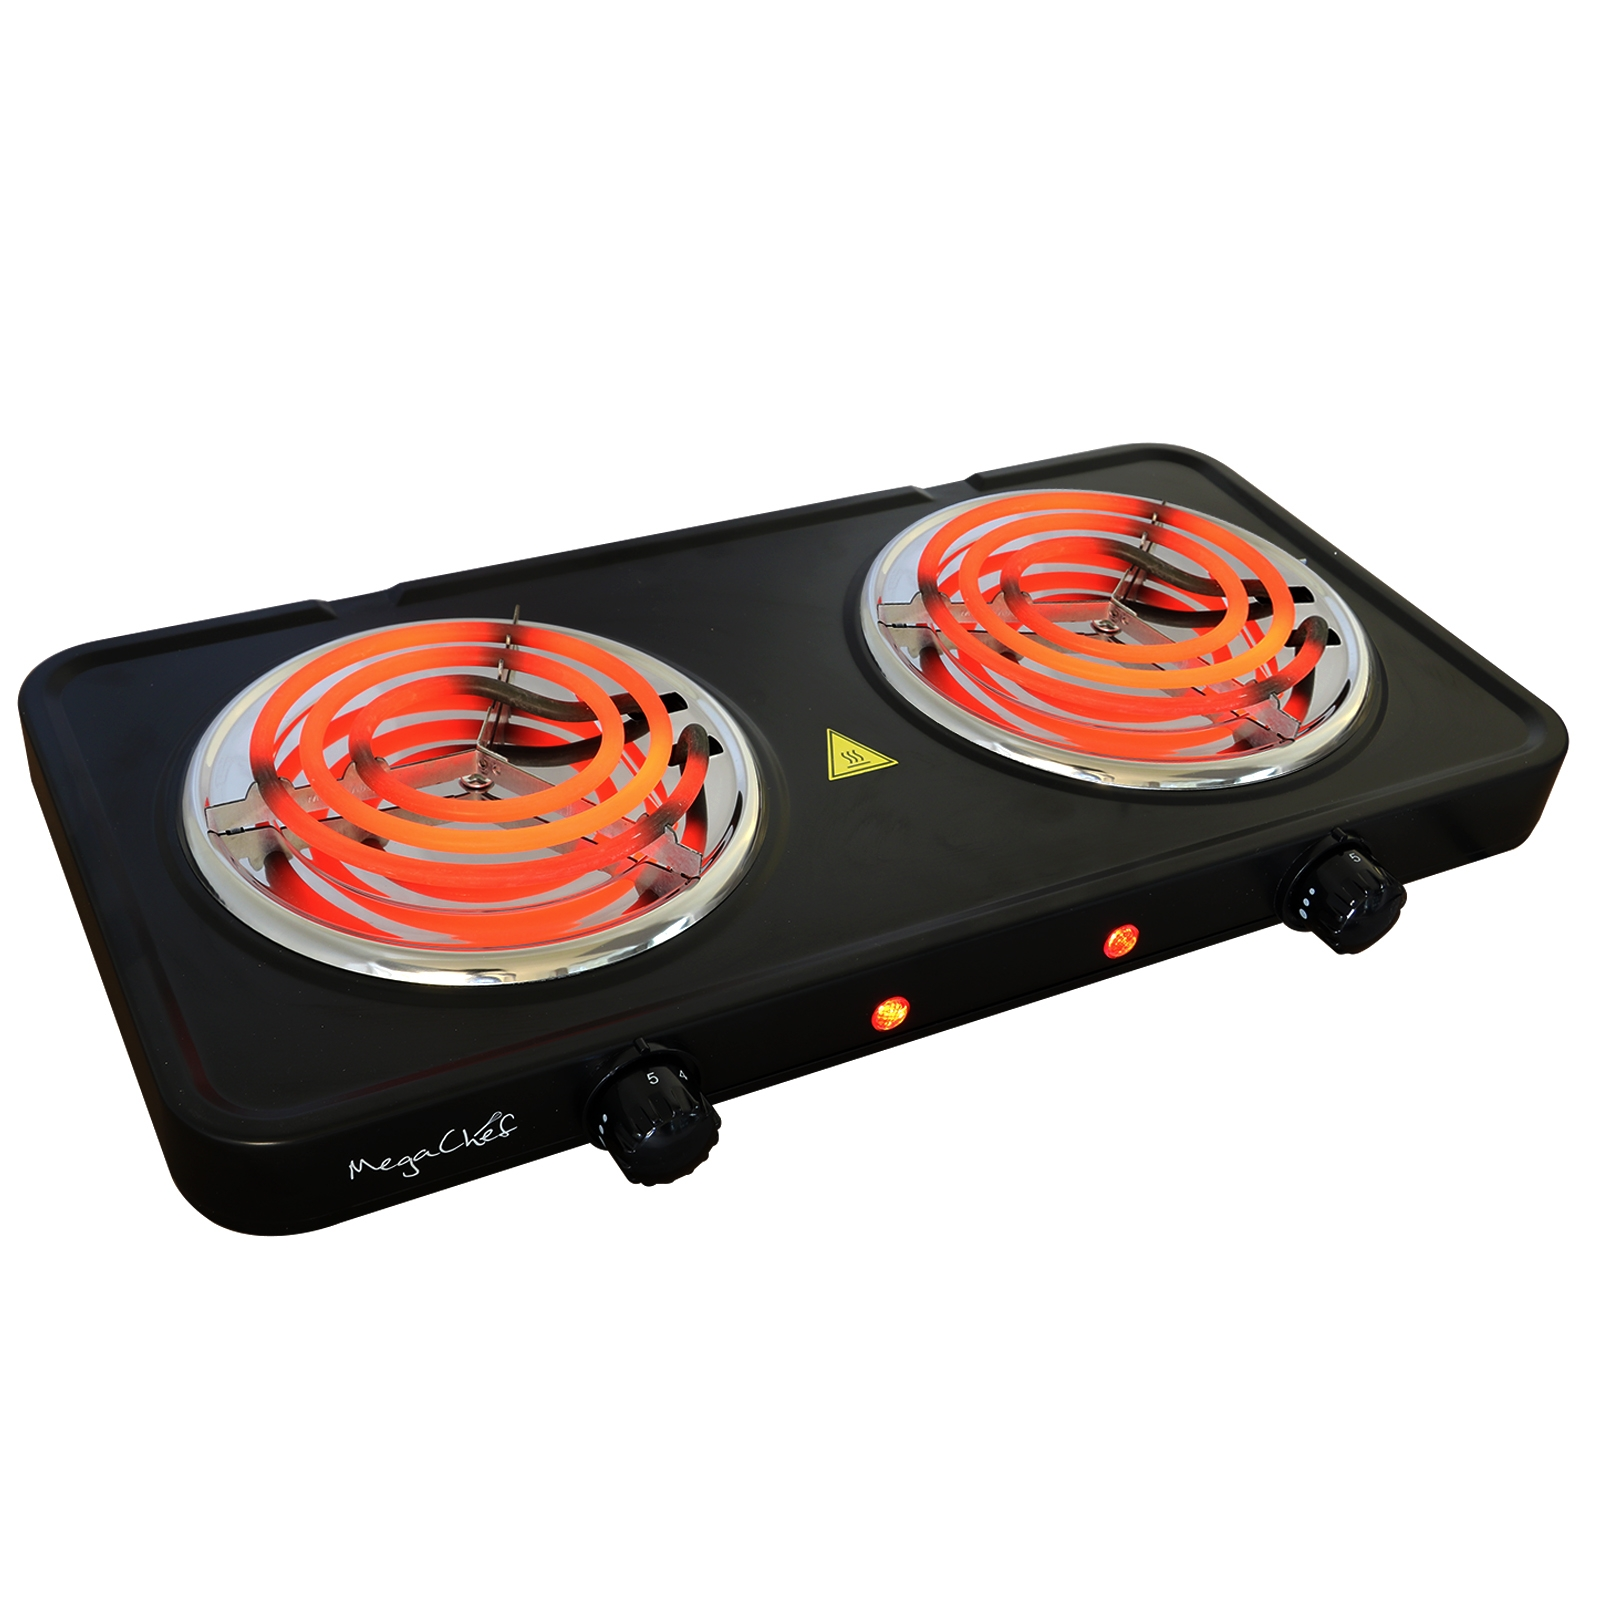 MegaChef Electric Easily Portable Ultra Lightweight Dual Coil Burner Cooktop Buffet Range in Matte Black